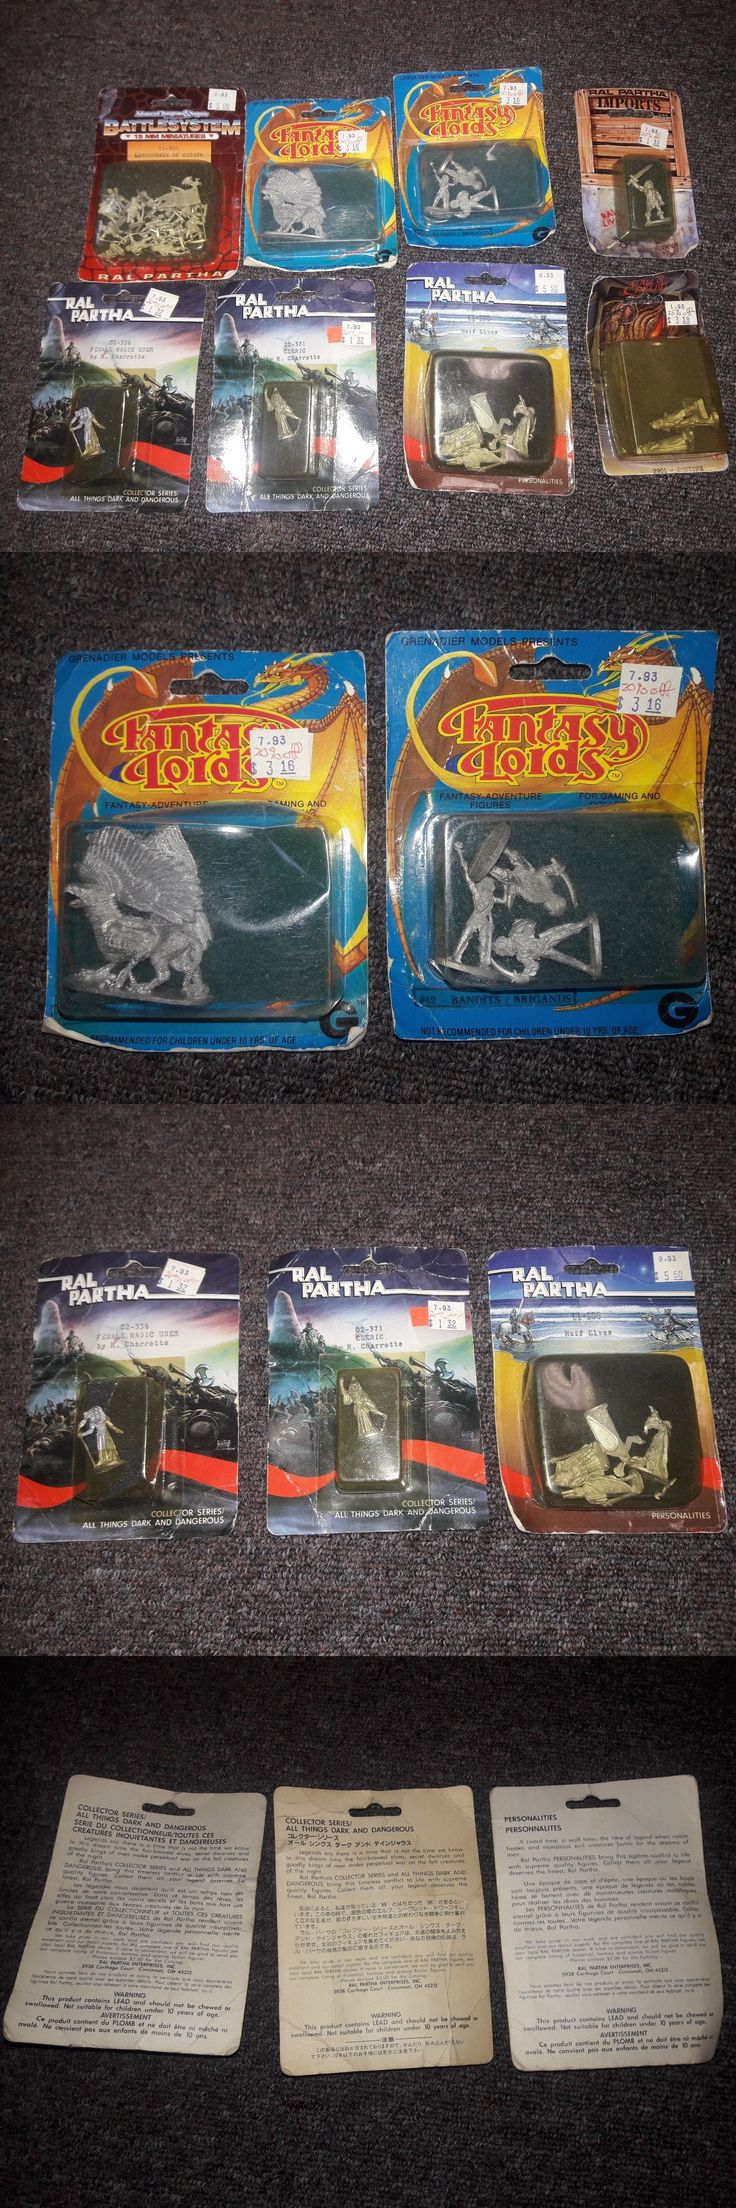 Ral Partha 16489: Lot Of 8 Vintage Mini Figurines (Ral Partha And Others) -> BUY IT NOW ONLY: $40 on eBay!